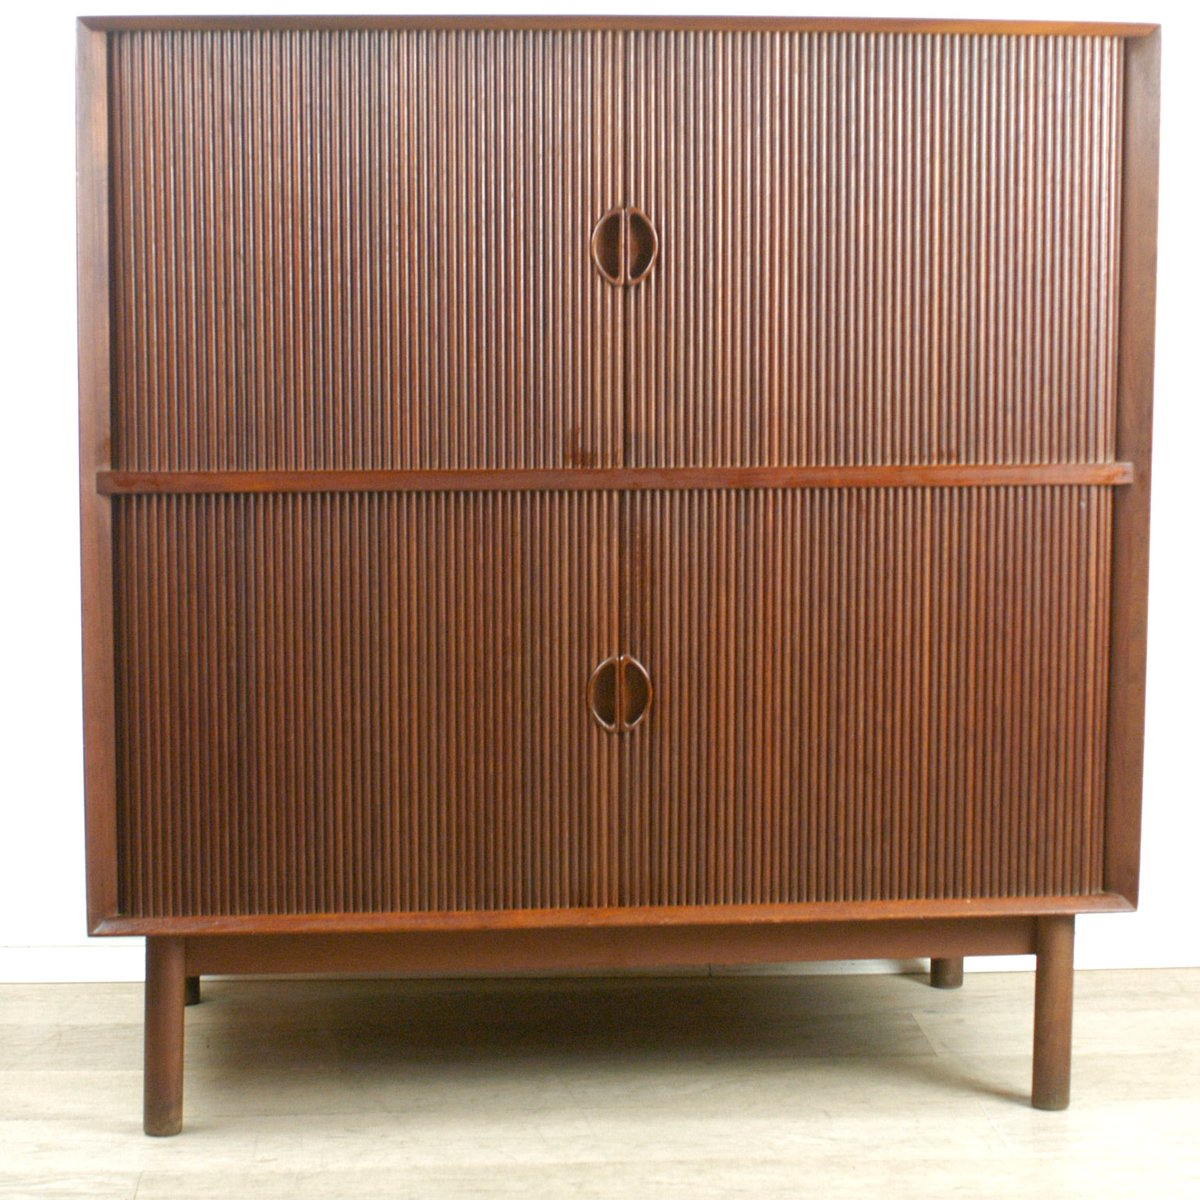 teak rollt r schrank von peter hvidt f r soborg 1960er bei pamono kaufen. Black Bedroom Furniture Sets. Home Design Ideas